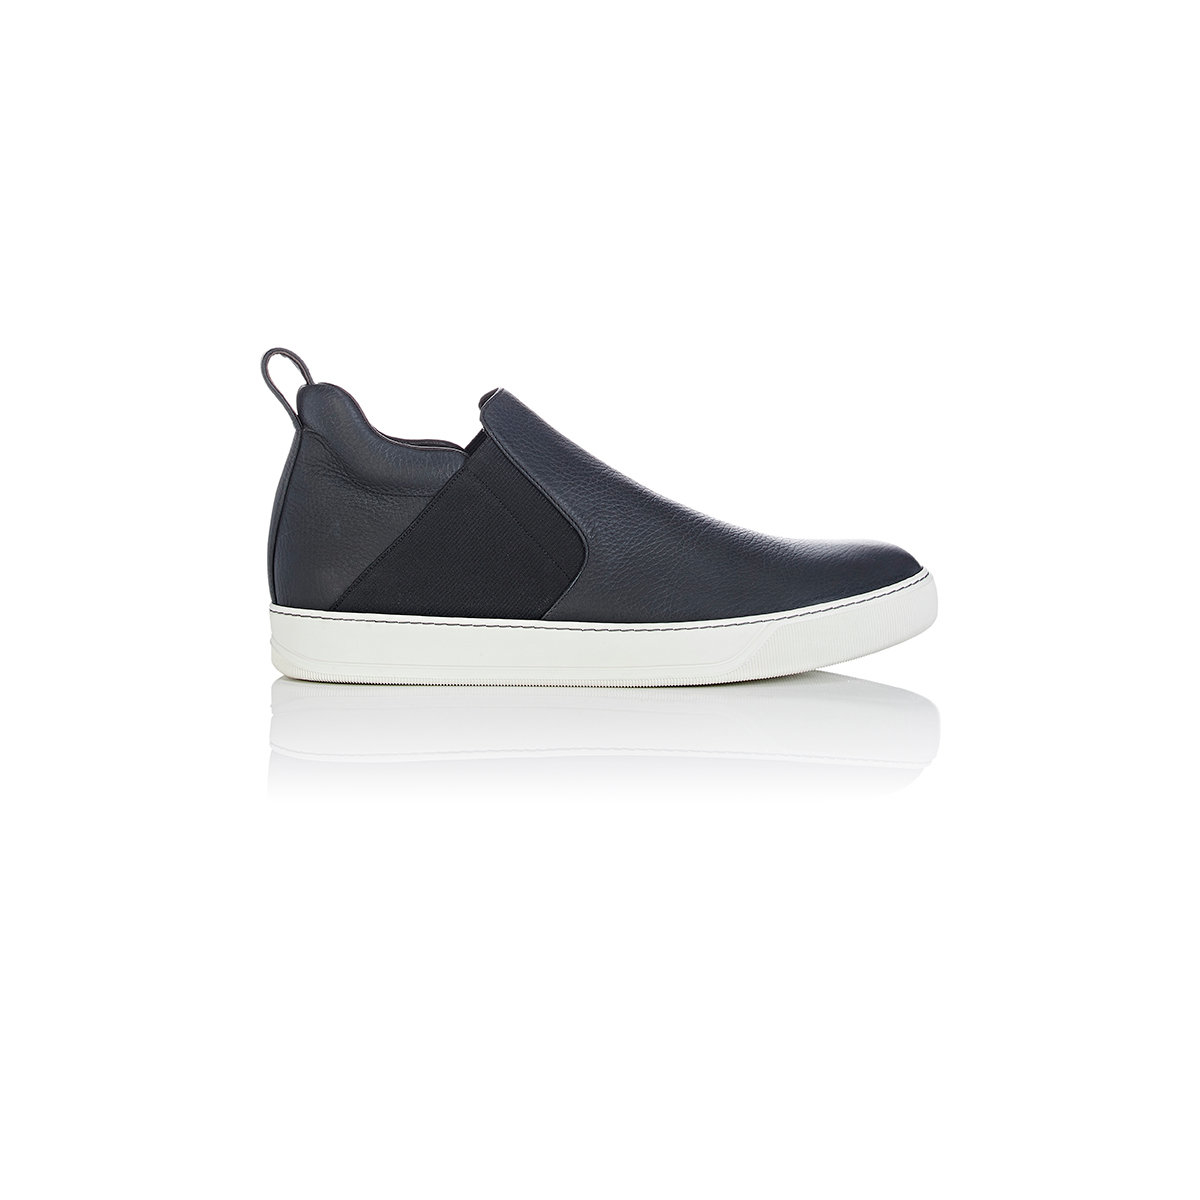 lanvin slip on mid top sneakers in black for lyst